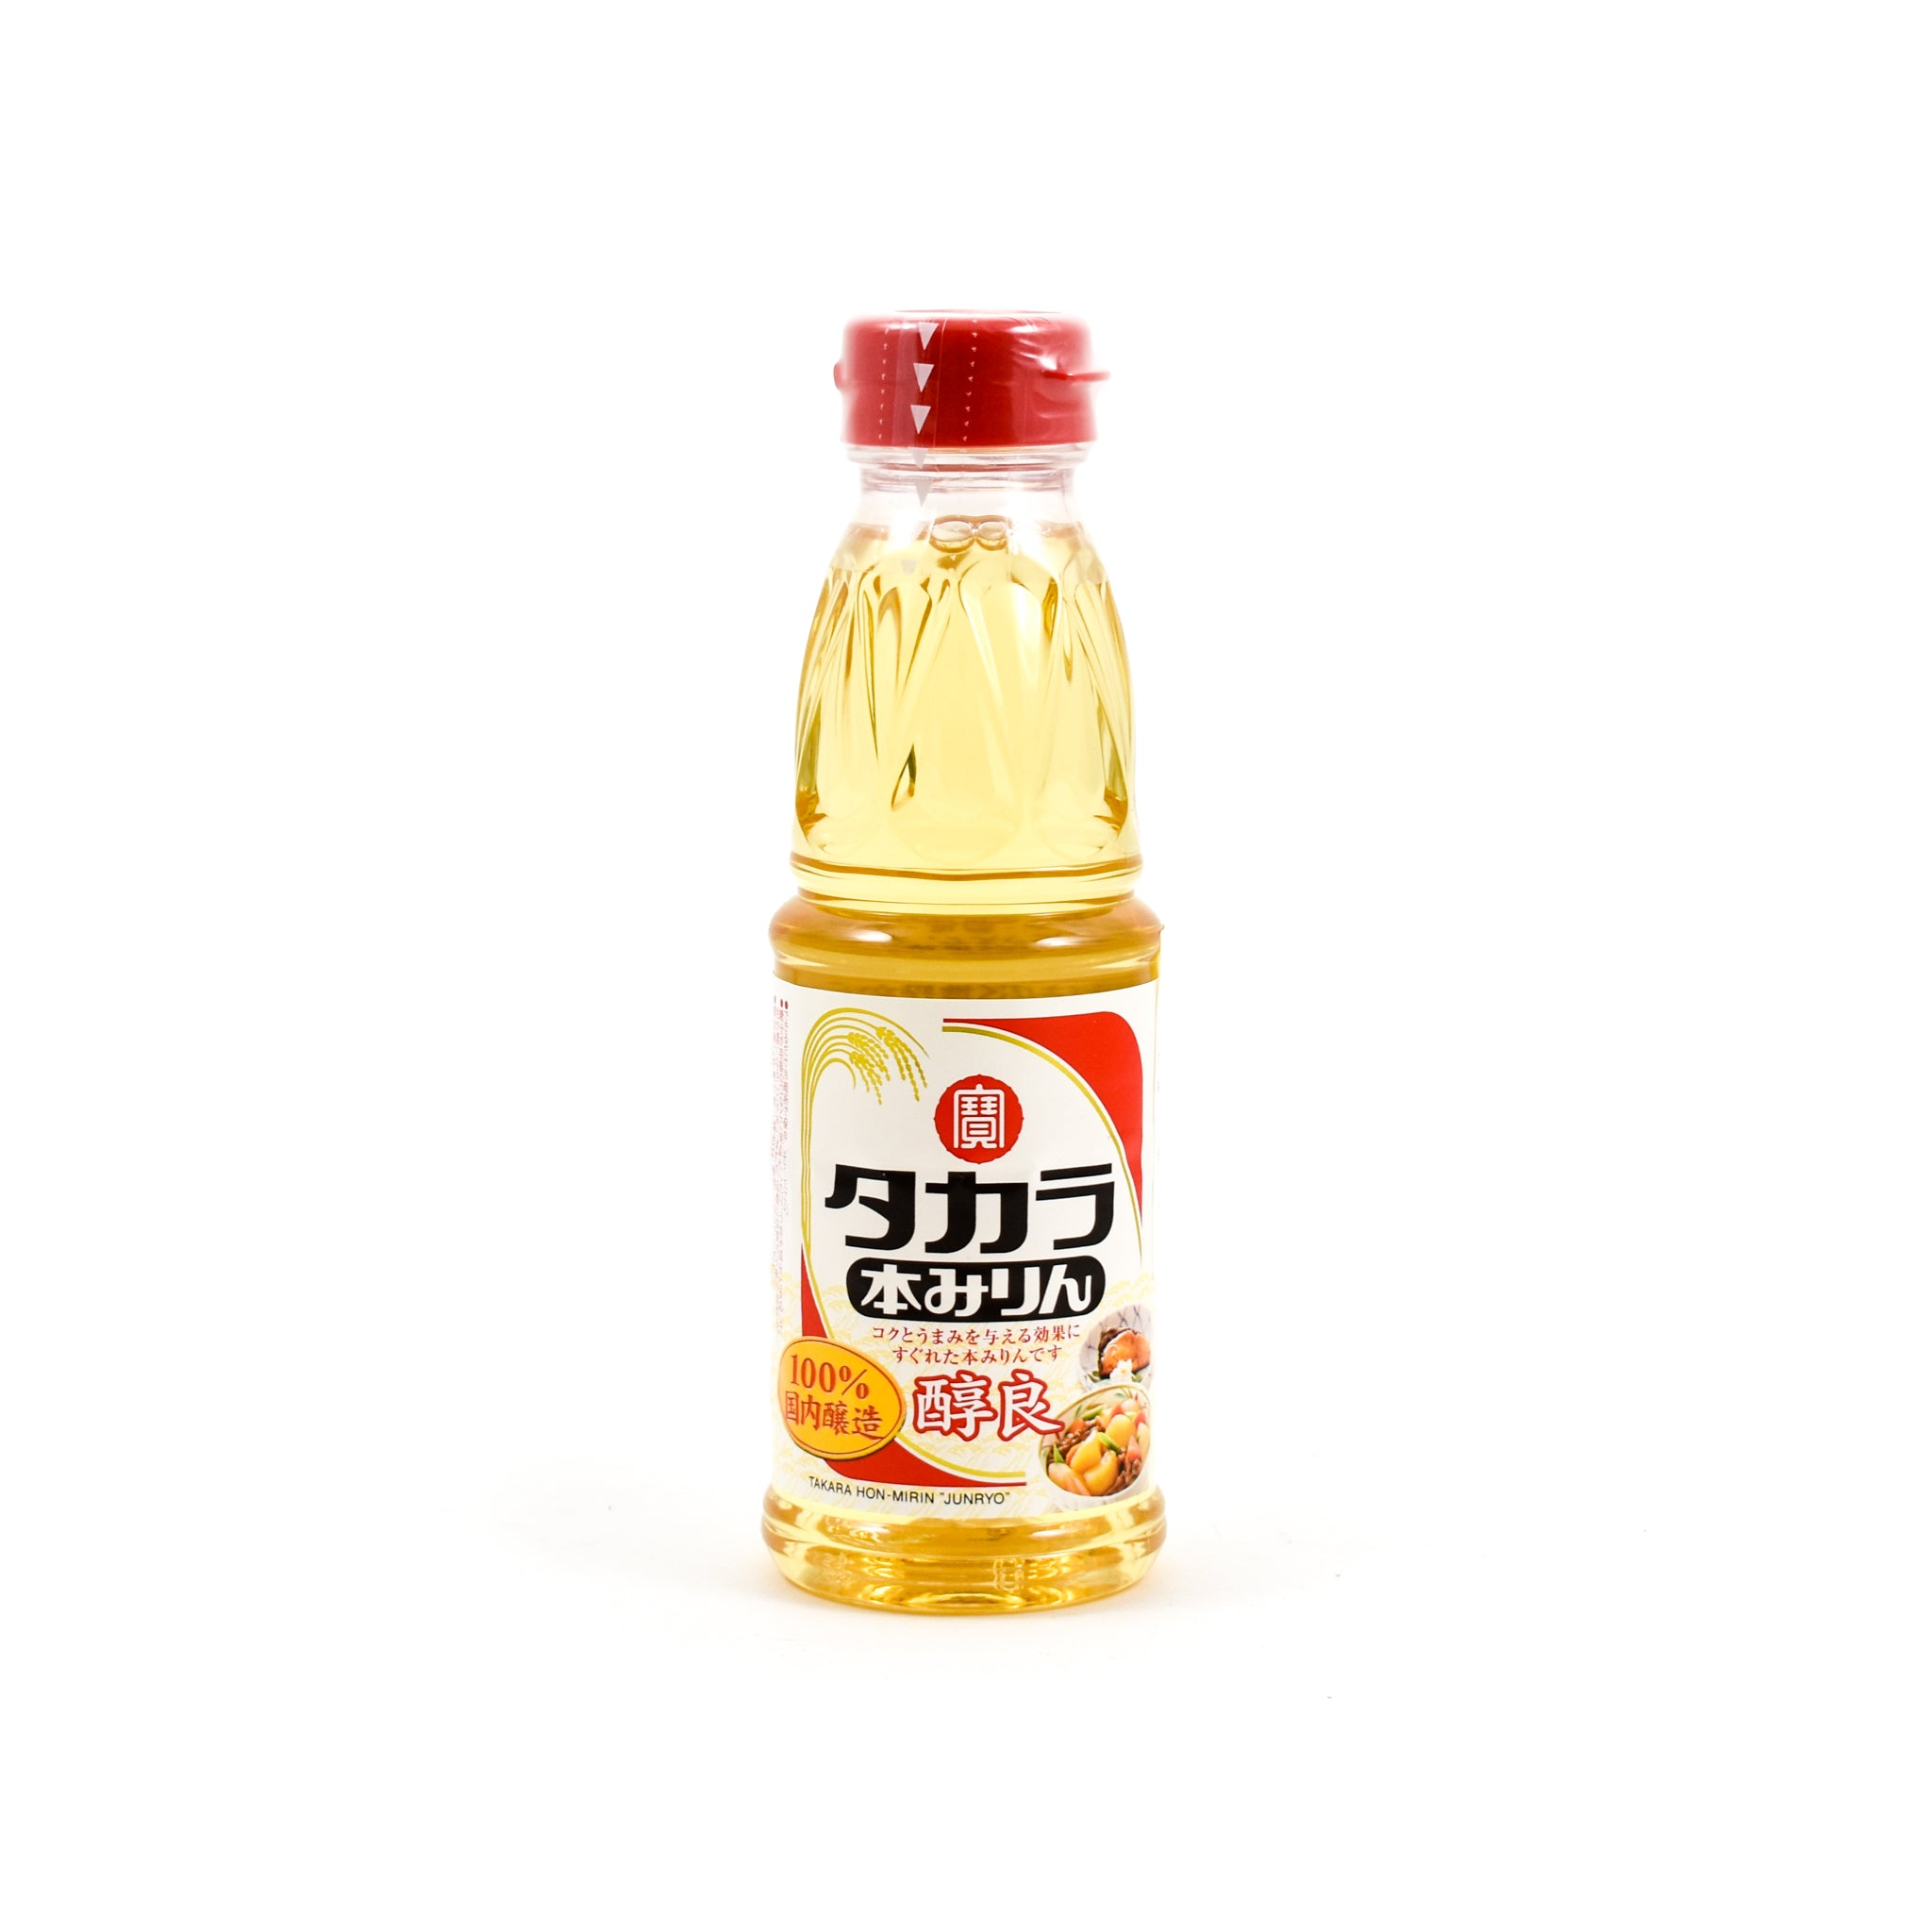 Takara Hon Mirin Rice Wine 300ml Ingredients Drinks Alcohol Japanese Food